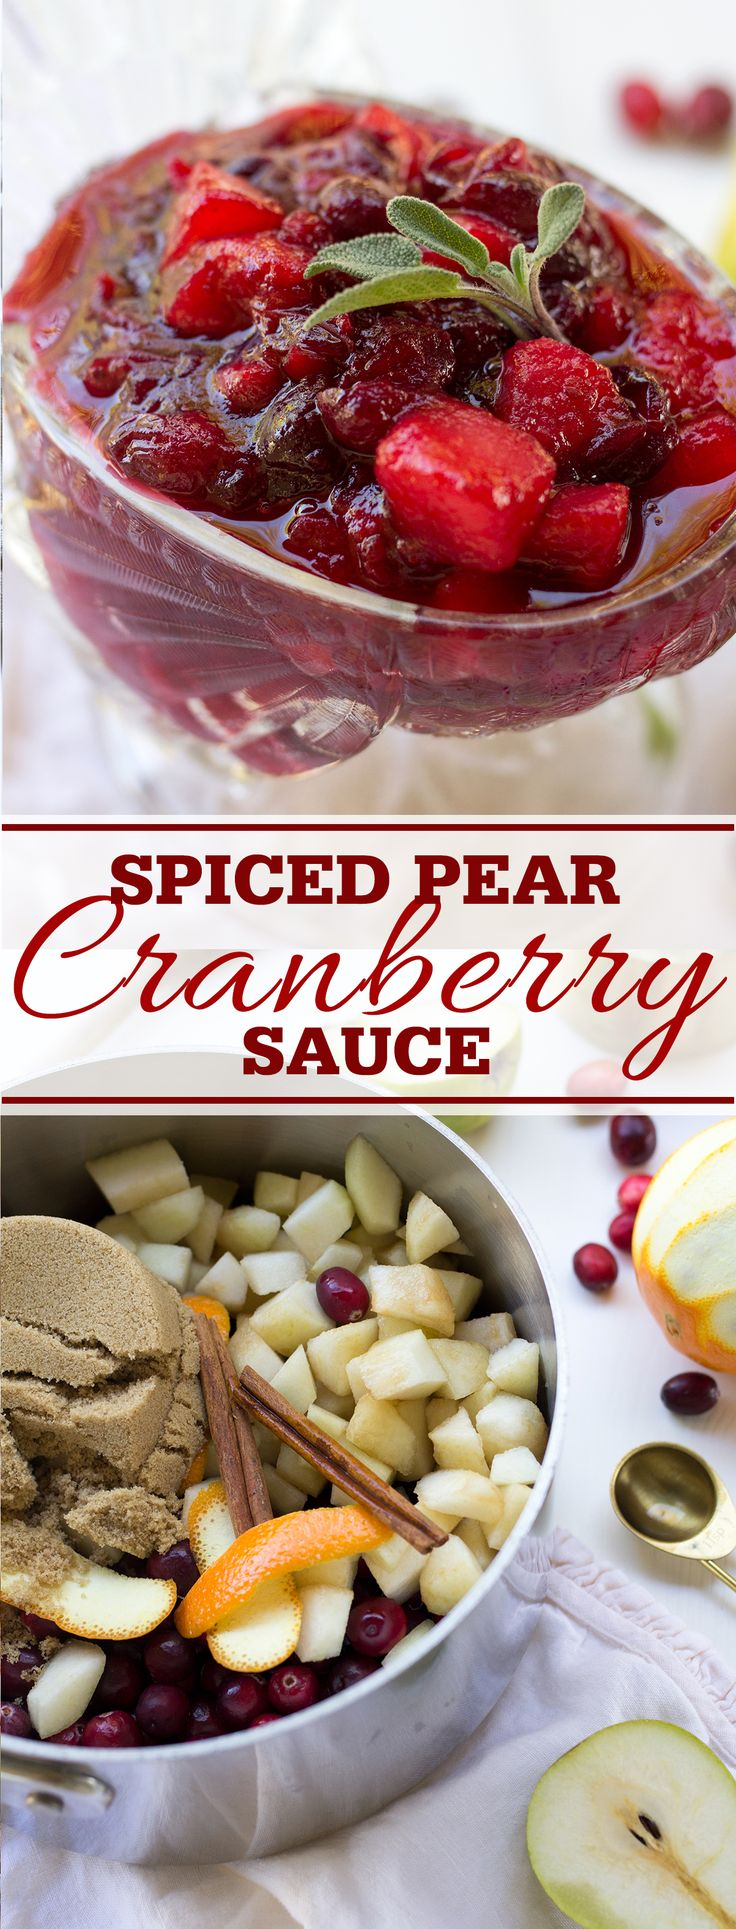 Spiced Pear and Cranberry Sauce is an easy variation on classic homemade cranberry sauce with chunks of sweet pear and plenty of cinnamon.